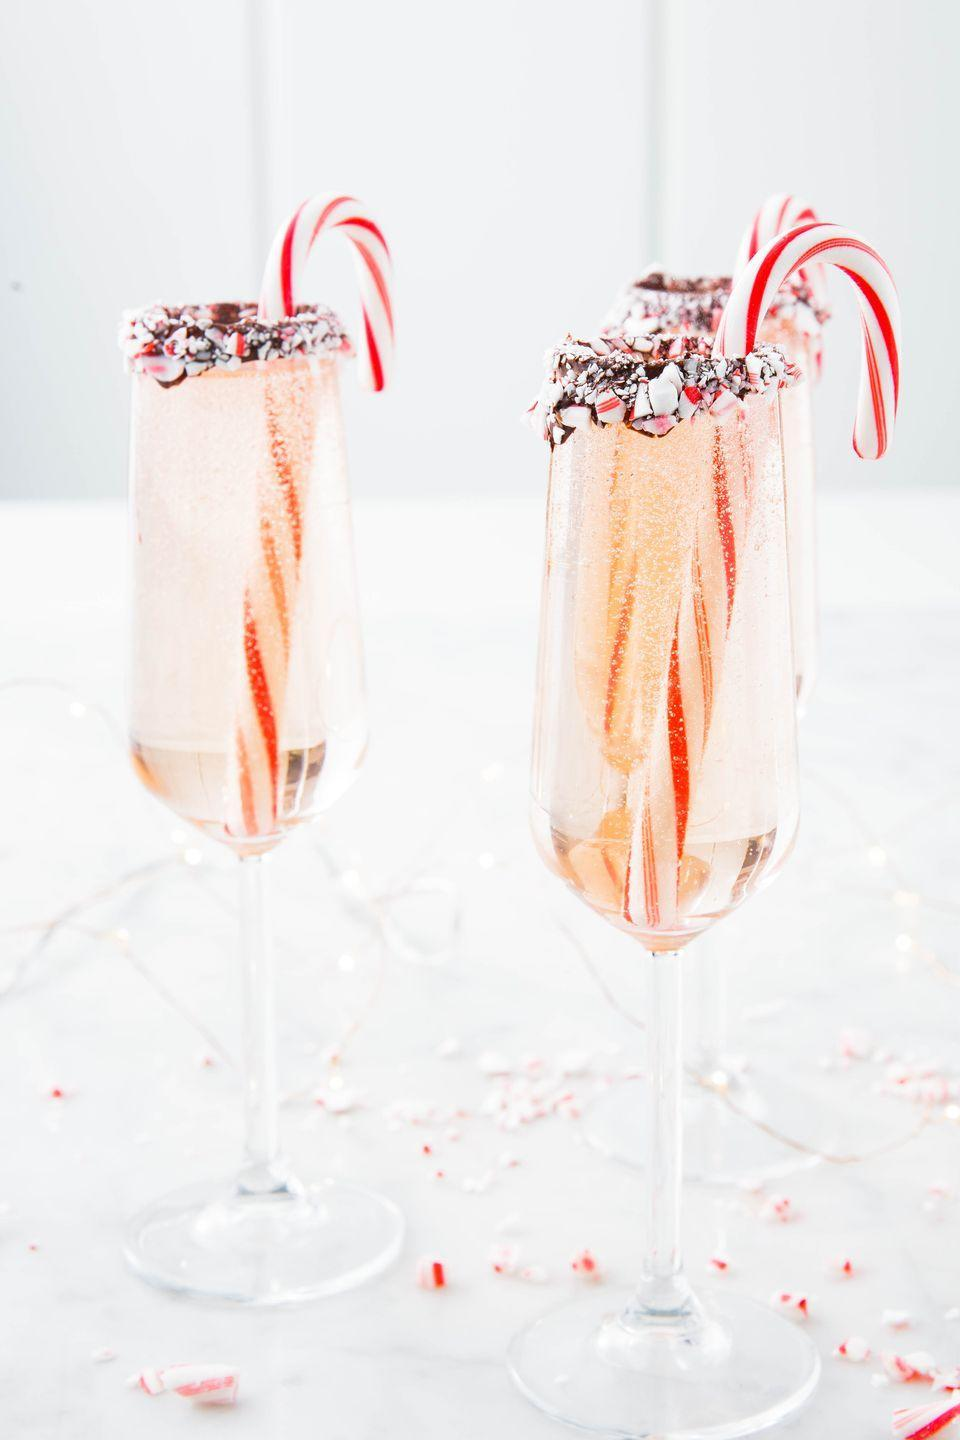 """<p>A glass of holiday cheer.</p><p>Get the recipe from <a href=""""https://www.delish.com/cooking/recipe-ideas/a25128817/peppermint-bark-mimosas-recipe/"""" rel=""""nofollow noopener"""" target=""""_blank"""" data-ylk=""""slk:Delish"""" class=""""link rapid-noclick-resp"""">Delish</a>. </p>"""